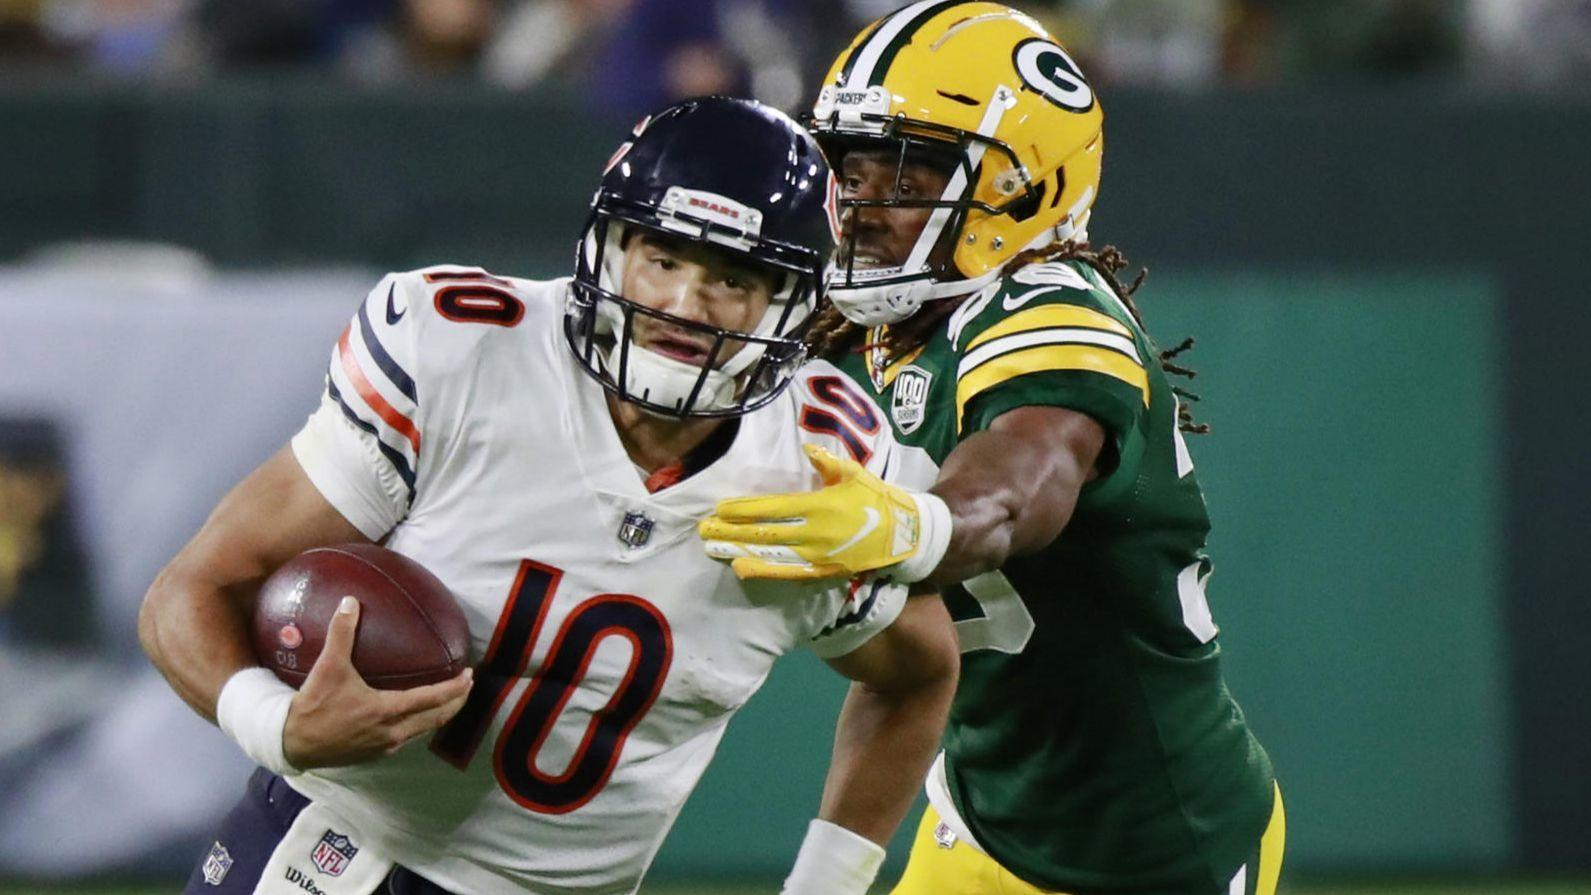 Ct-spt-bears-packers-observations-trubisky-mack-20180911